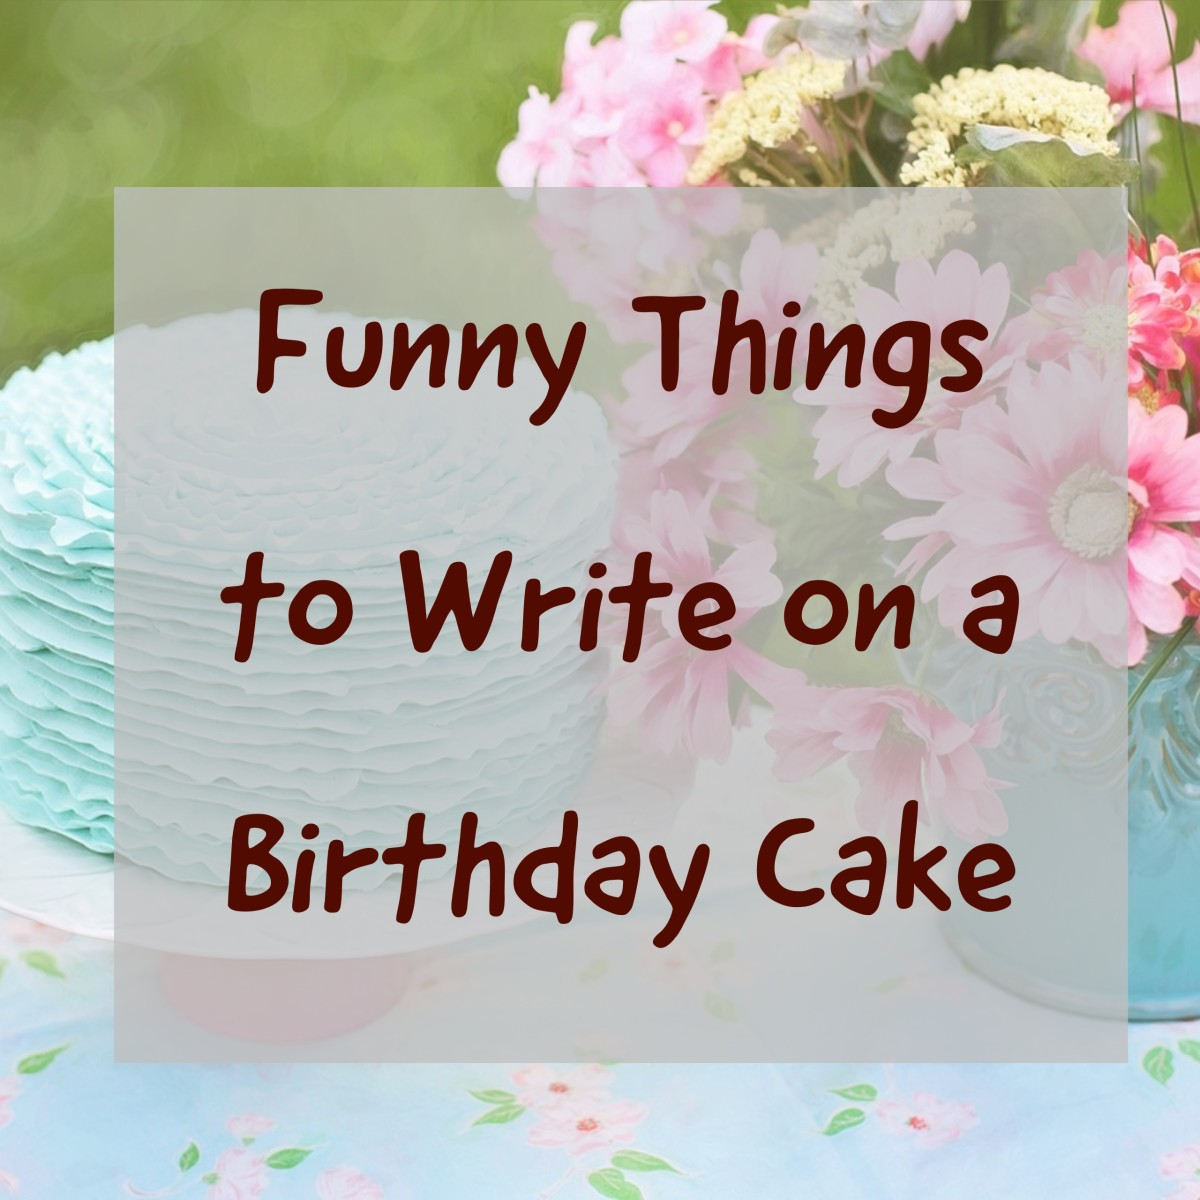 Astonishing Over 100 Funny Things To Write On A Birthday Cake Holidappy Funny Birthday Cards Online Alyptdamsfinfo